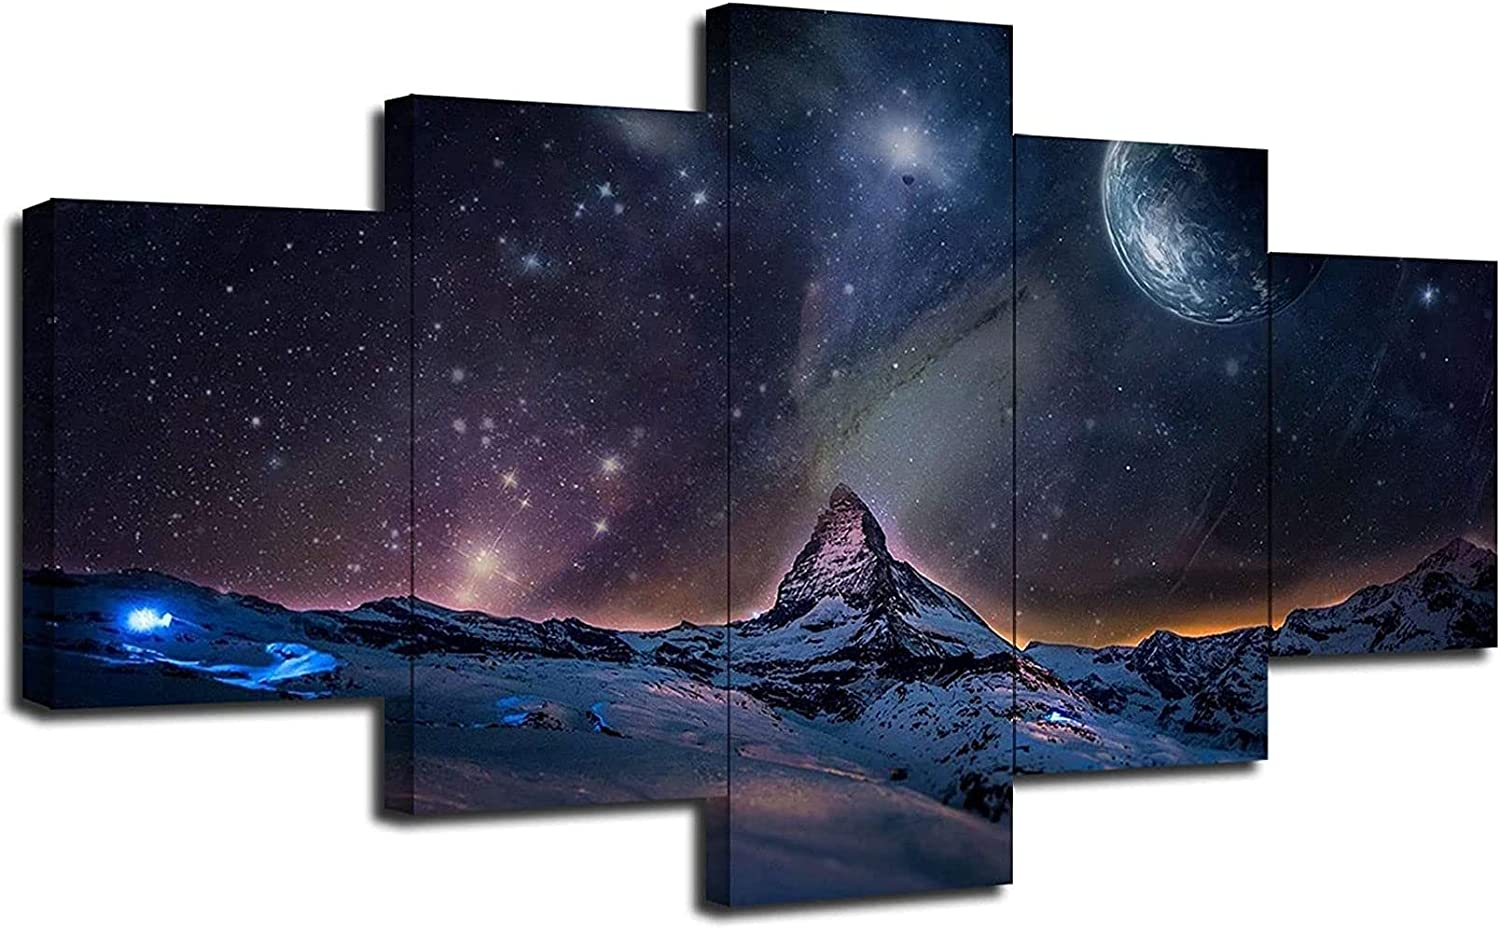 Unframed Cheap super special price Limited price sale 5 Pieces Posters Painting for Living Room Decorations B